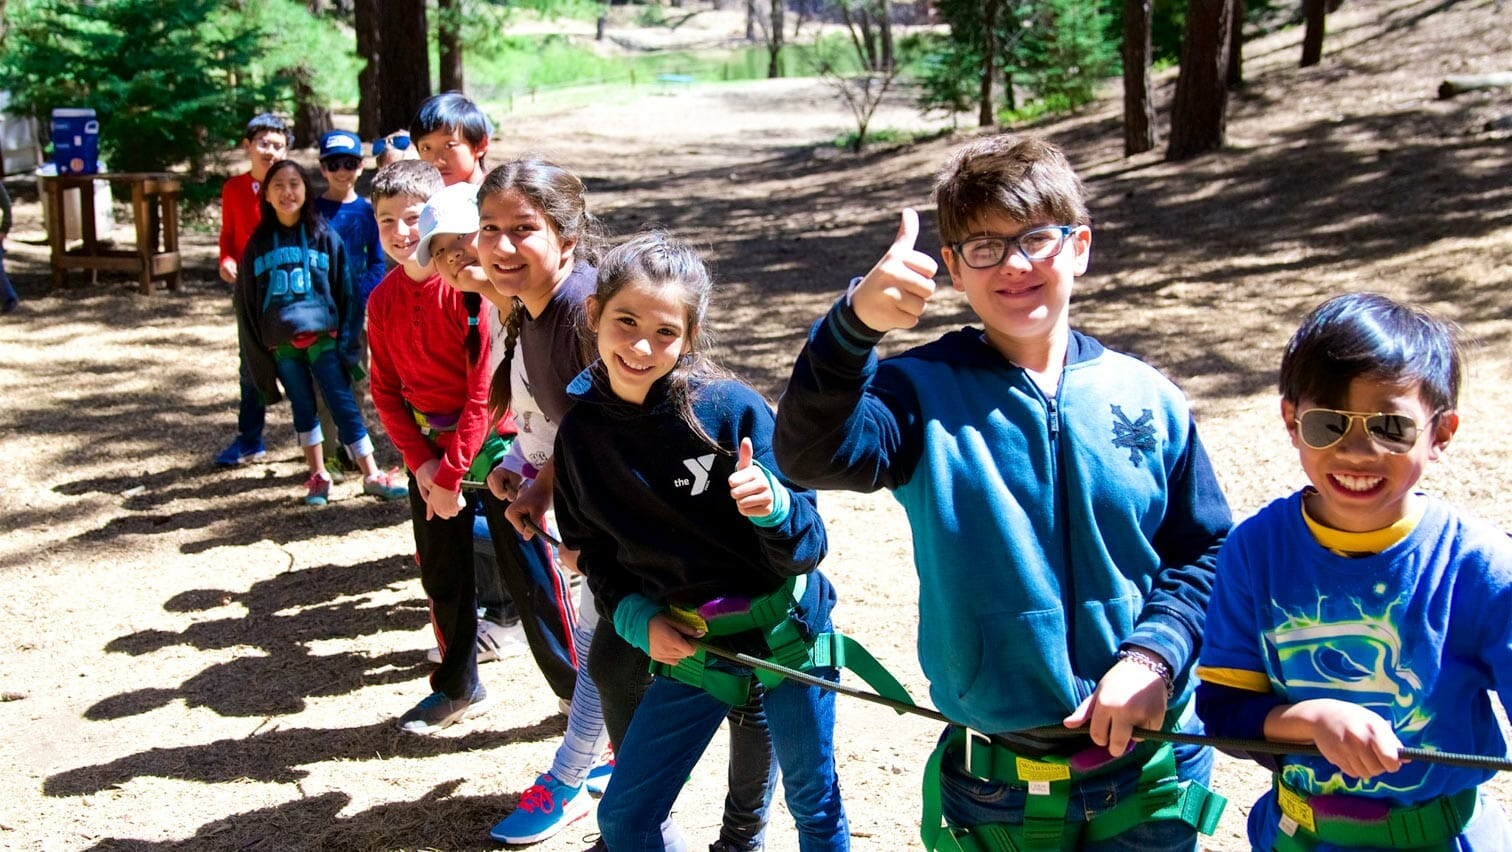 Students line up along rope while one gives thumbs up